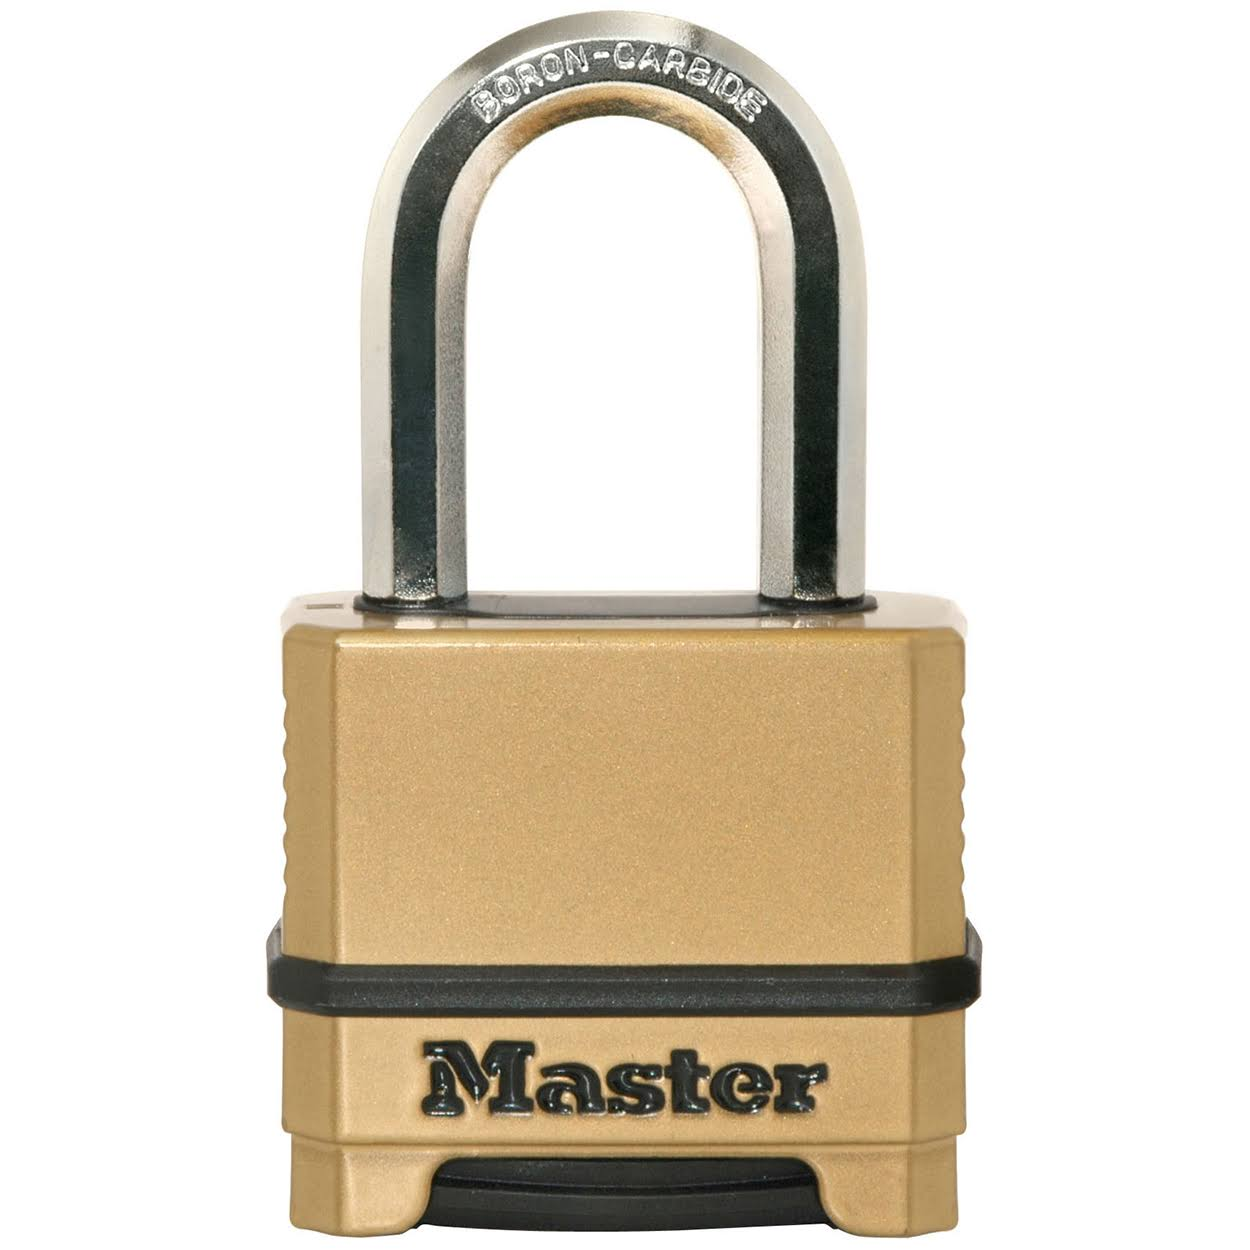 Master Lock Excell 4 Digit Combination Padlock - 50mm